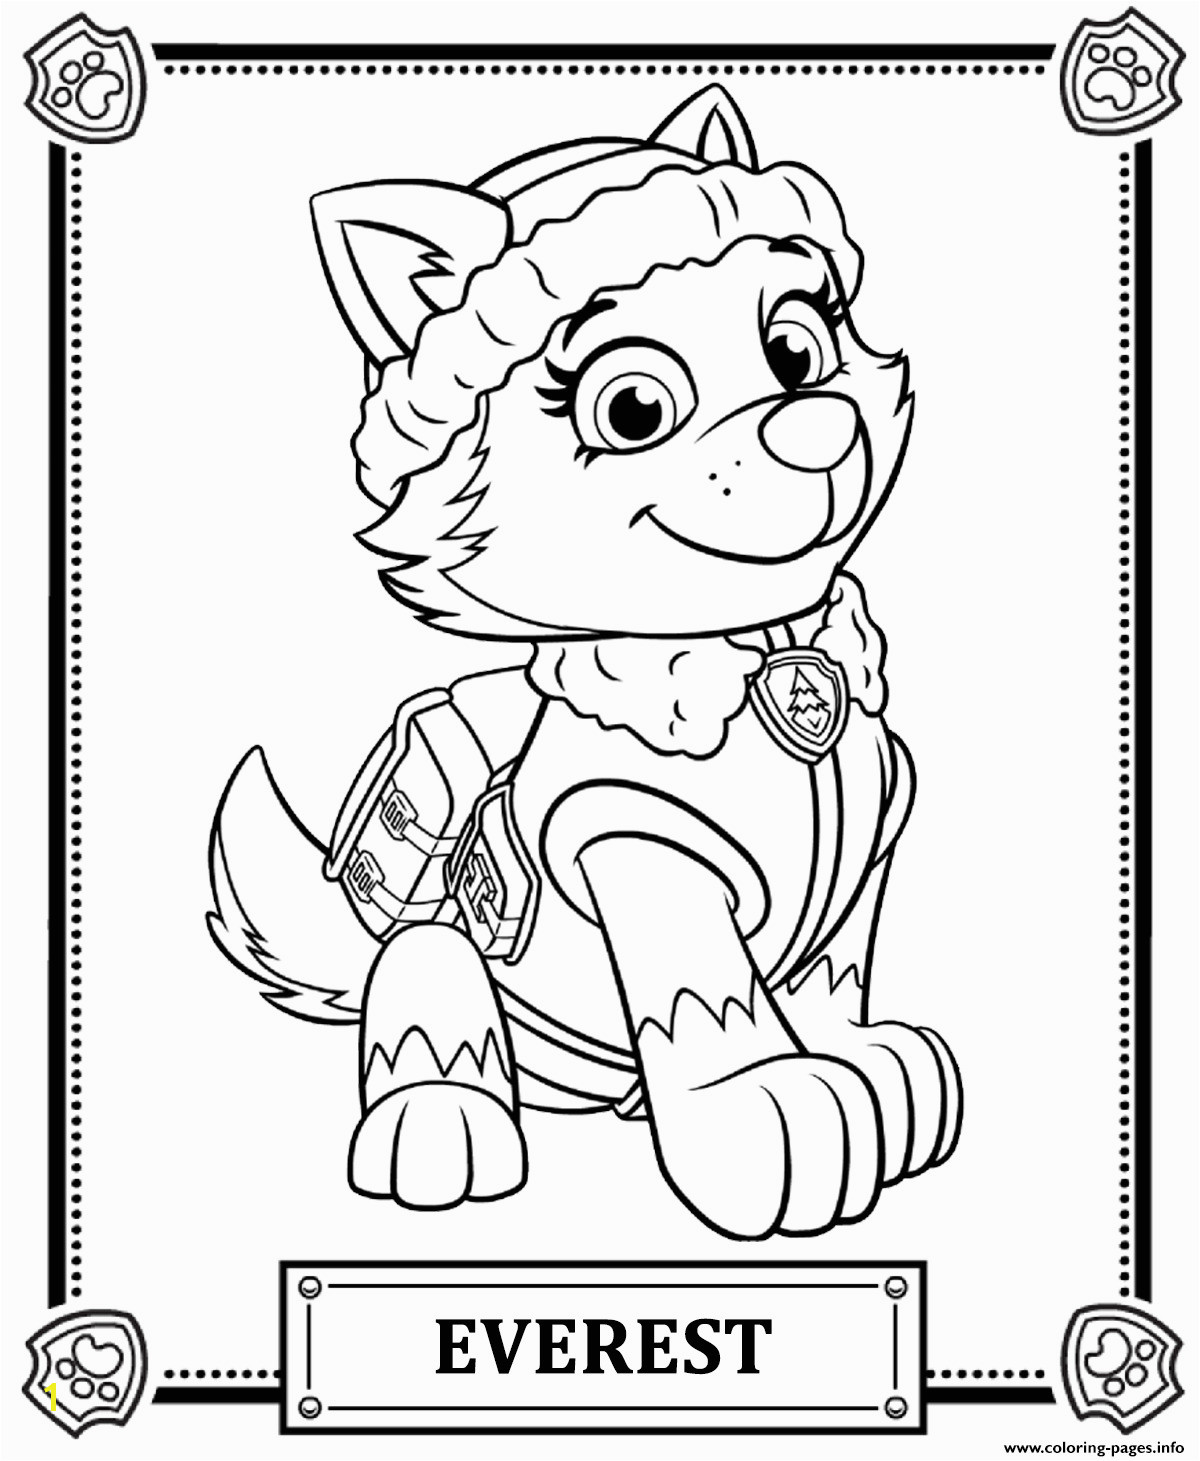 Print Paw Patrol Everest Coloring Pages Neu Paw Patrol Ausmalbilder Rocky